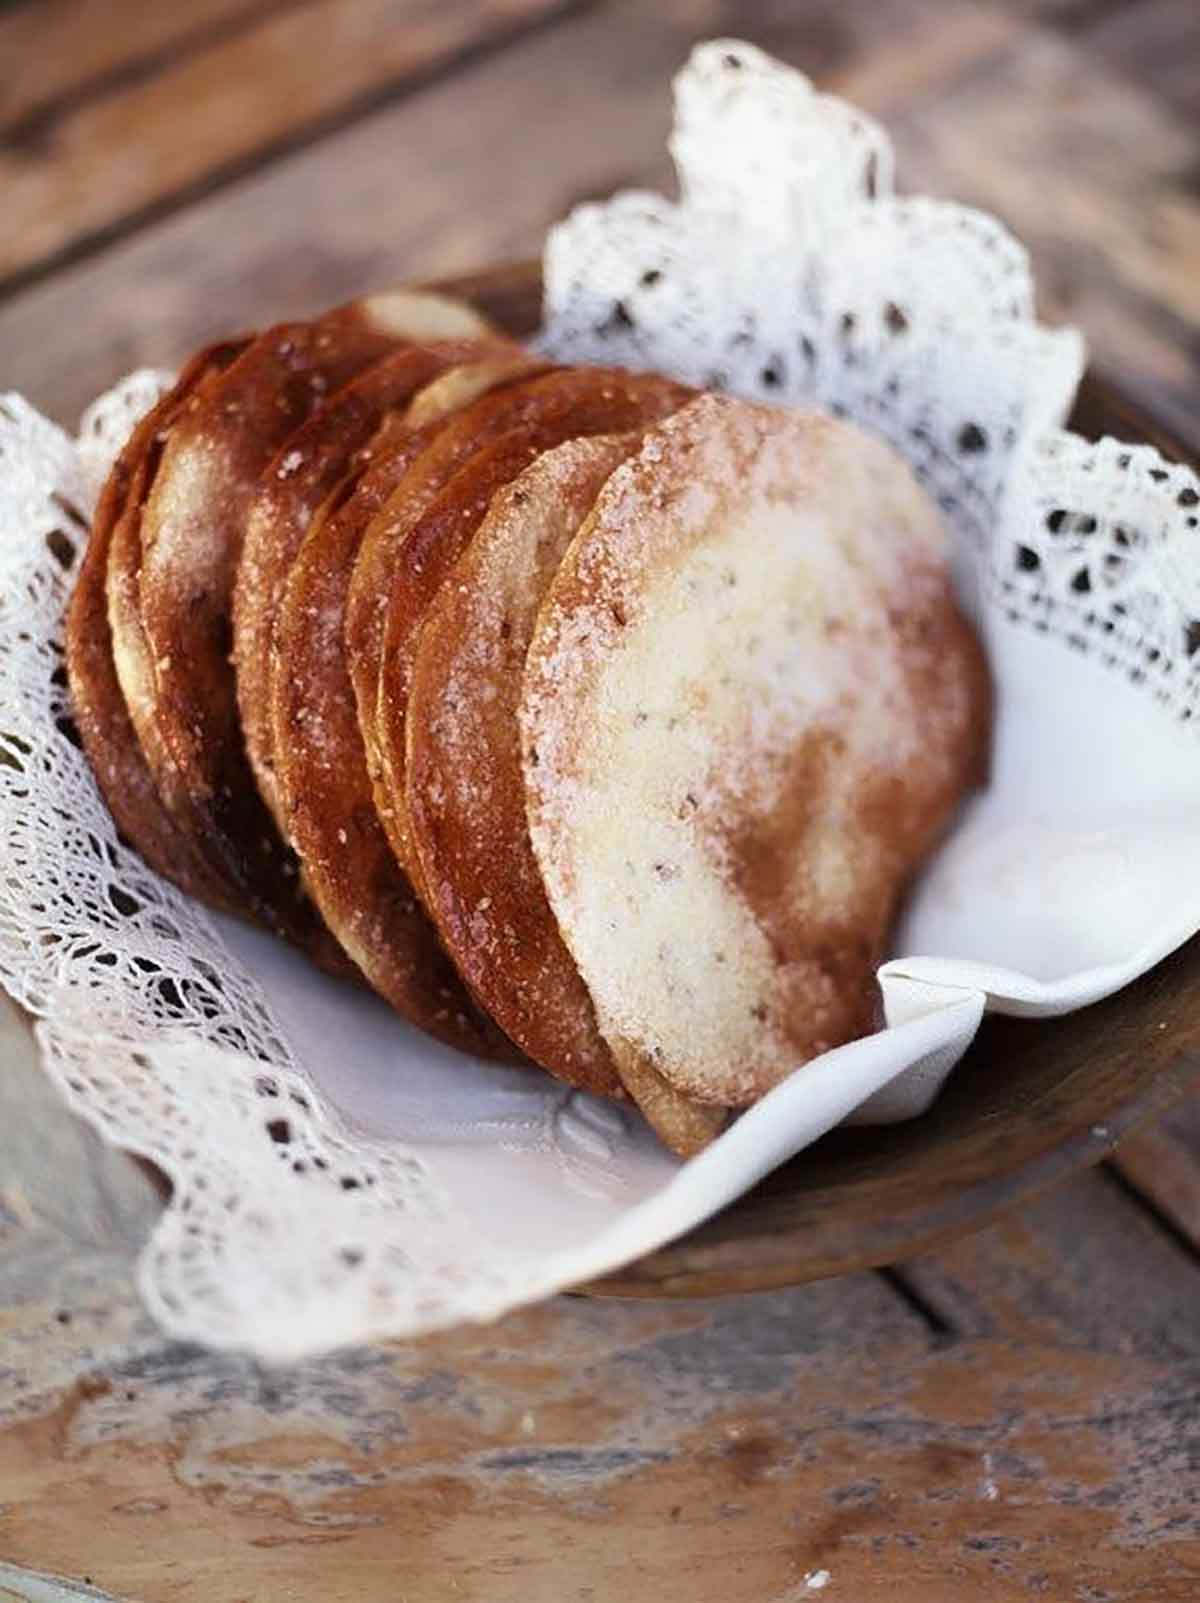 Several Spanish olive oil tortas in a bowl lined with a lace linen cloth.